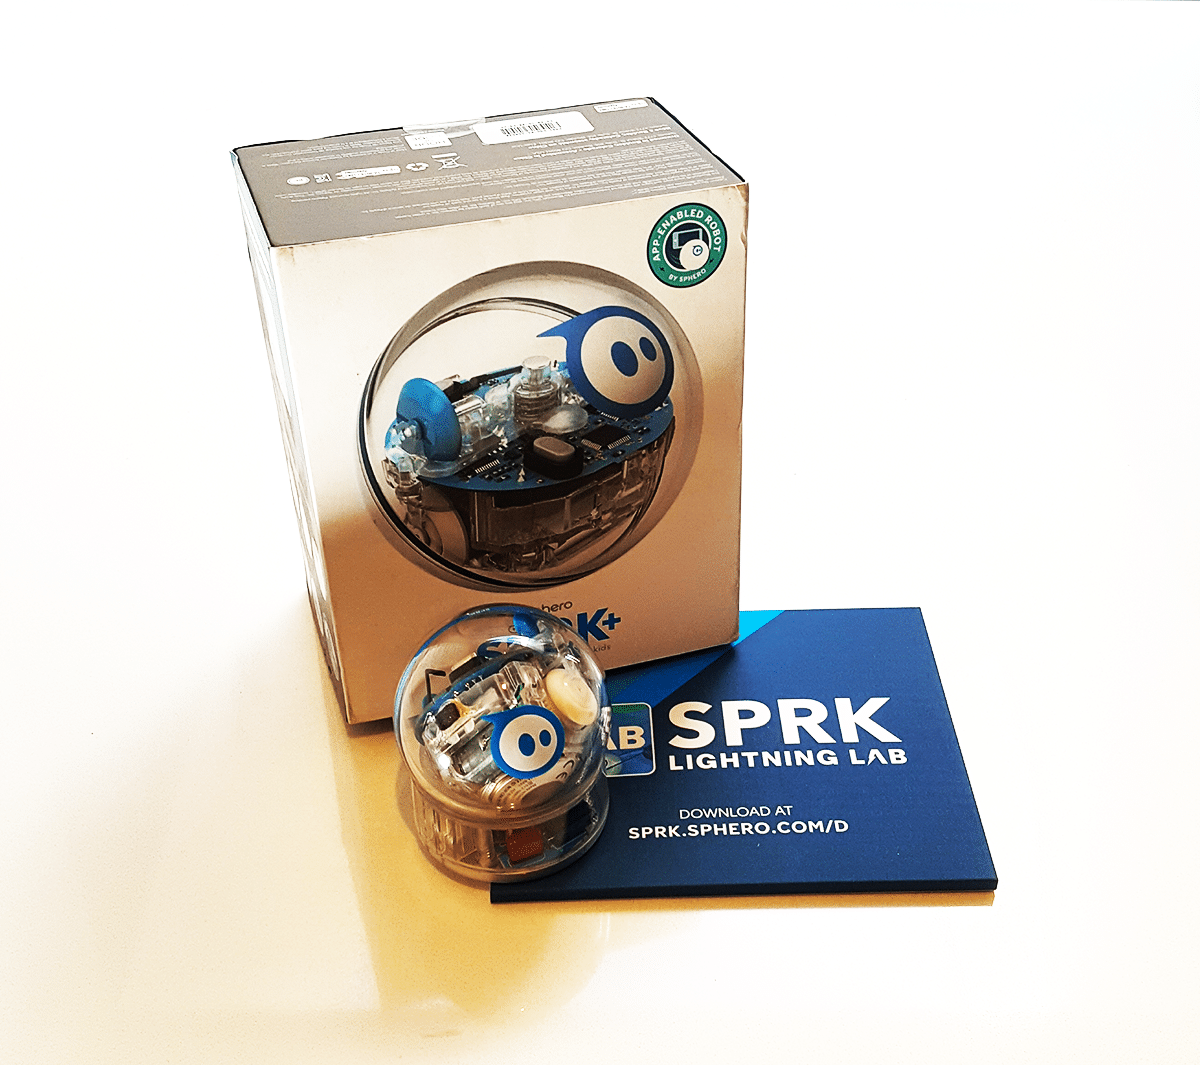 Sphero The Indestructible Robotic Programmable Ball Nikki Bush Bb8 Star Wars Special Edition Bundle By App Enabled Droid